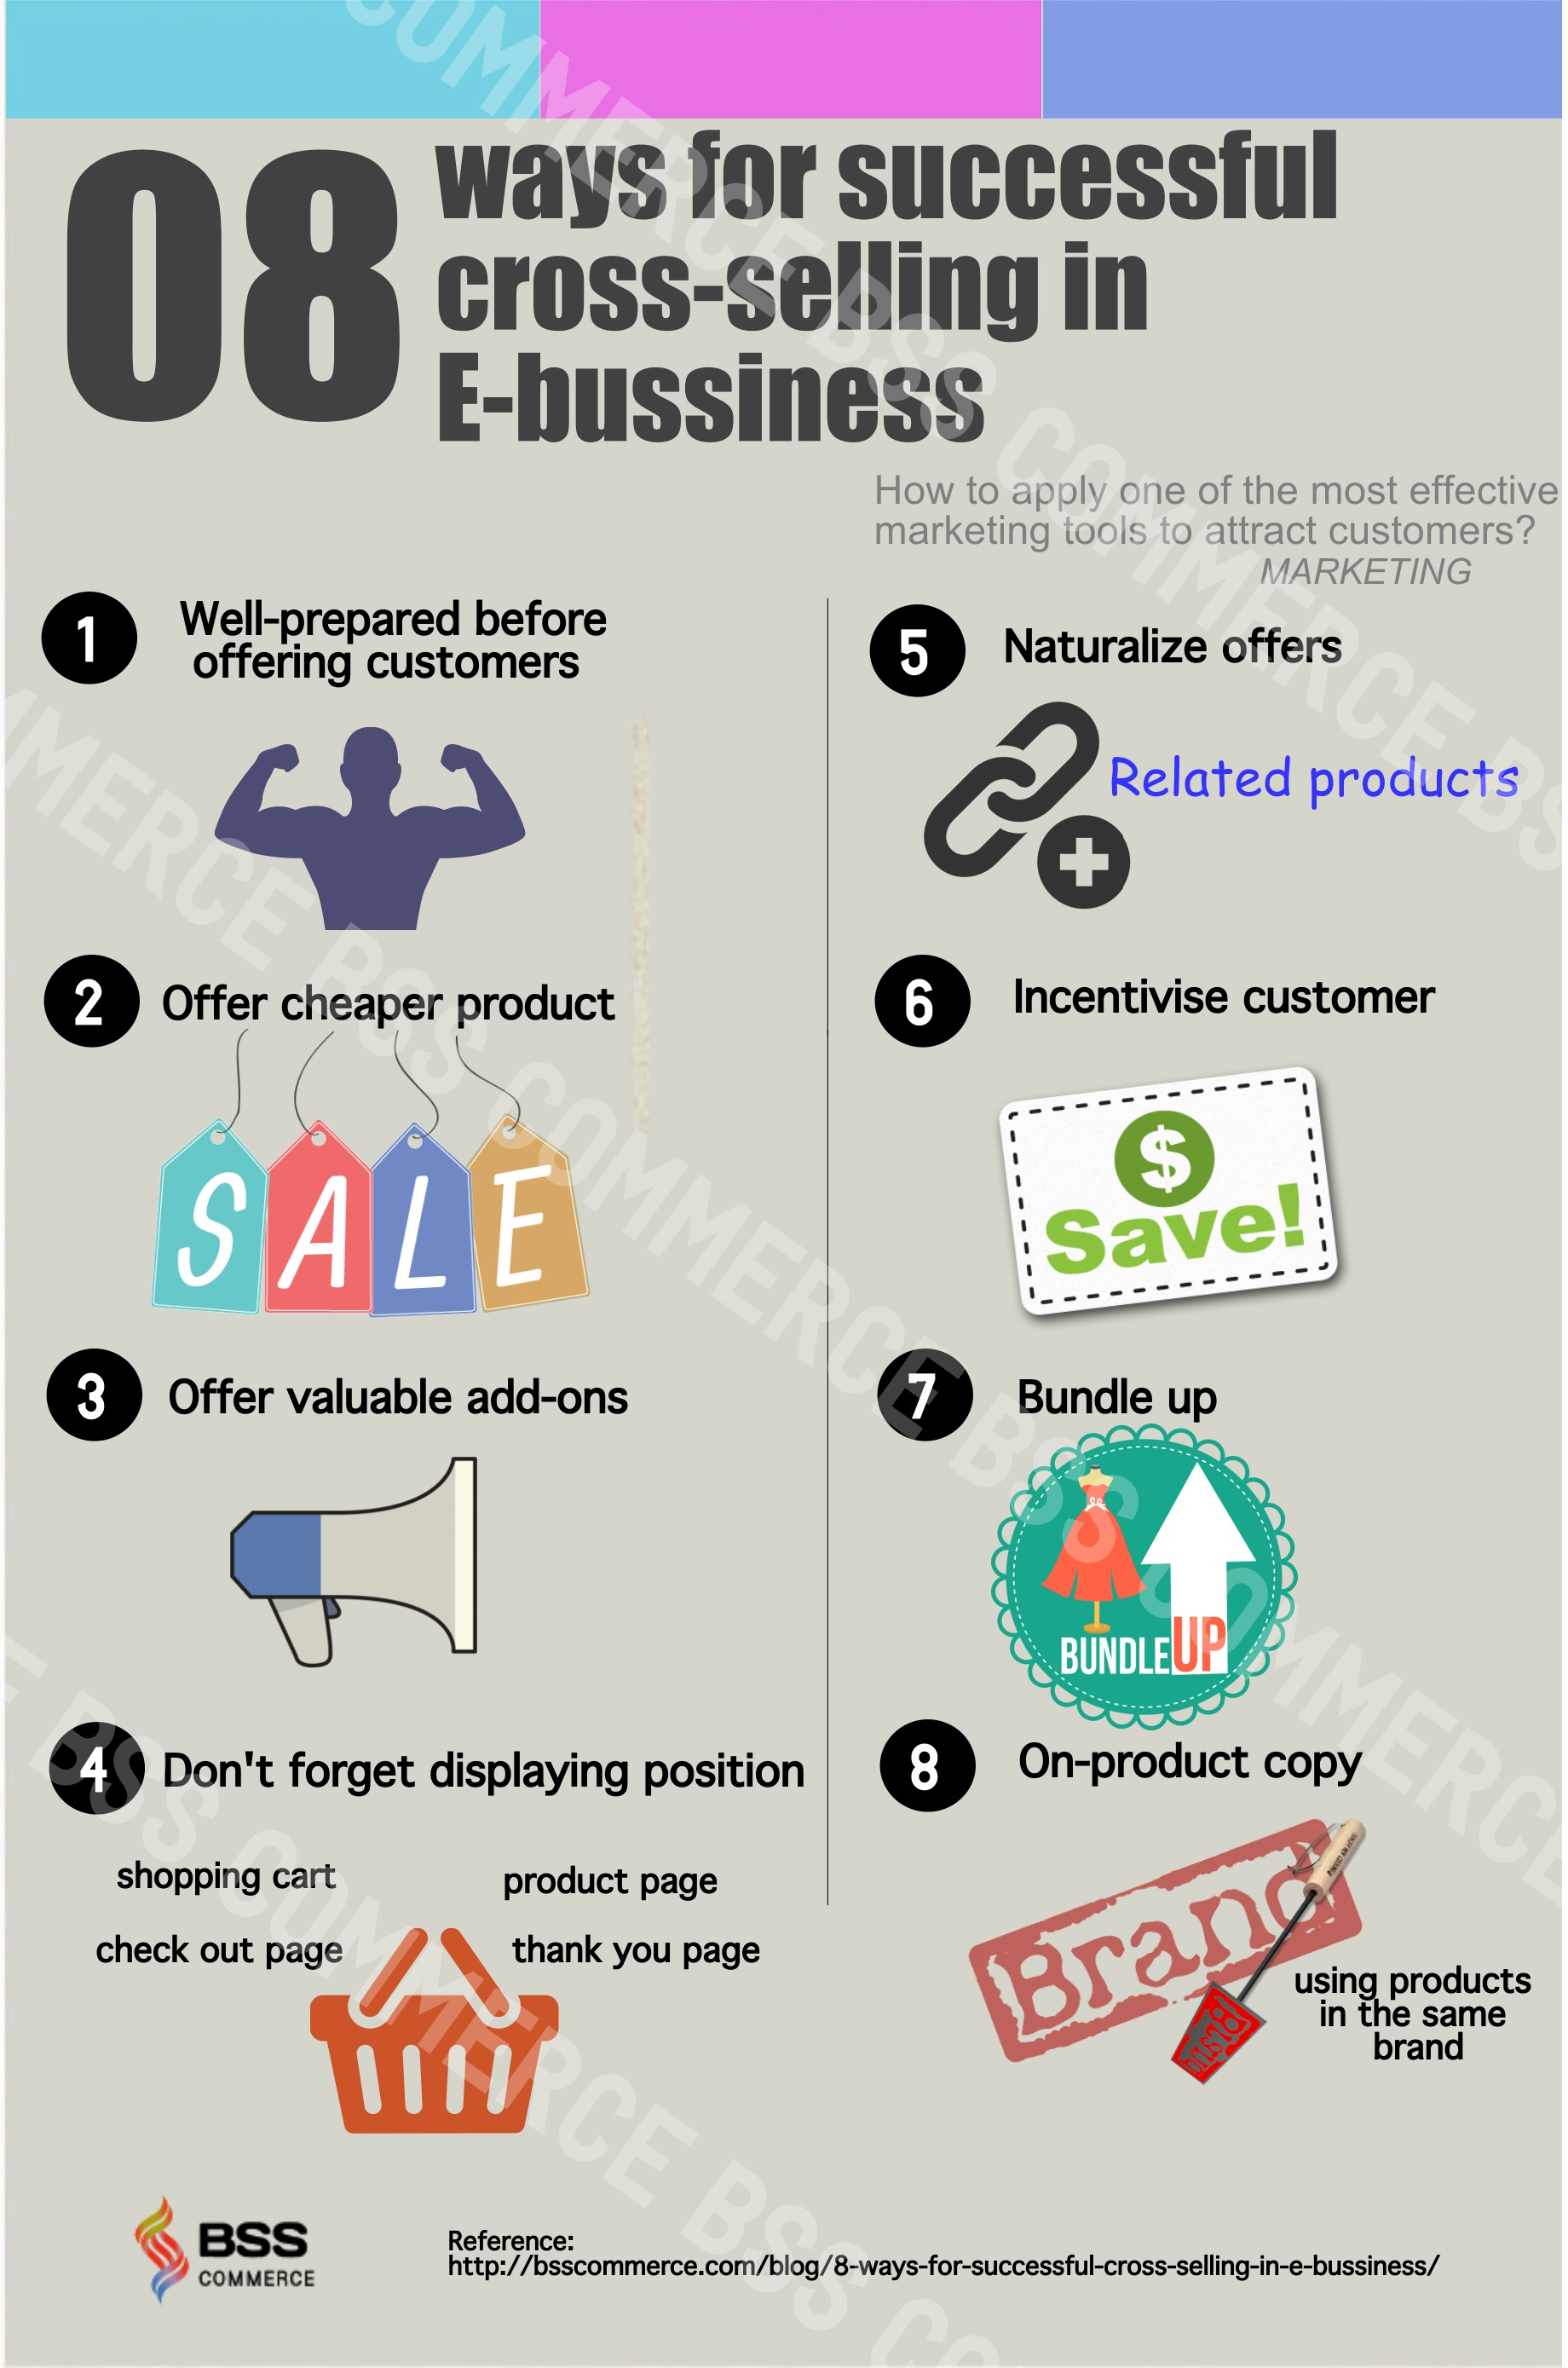 8 WAYS FOR SUCCESSCUL CROSS SELLING IN E BUSINESS